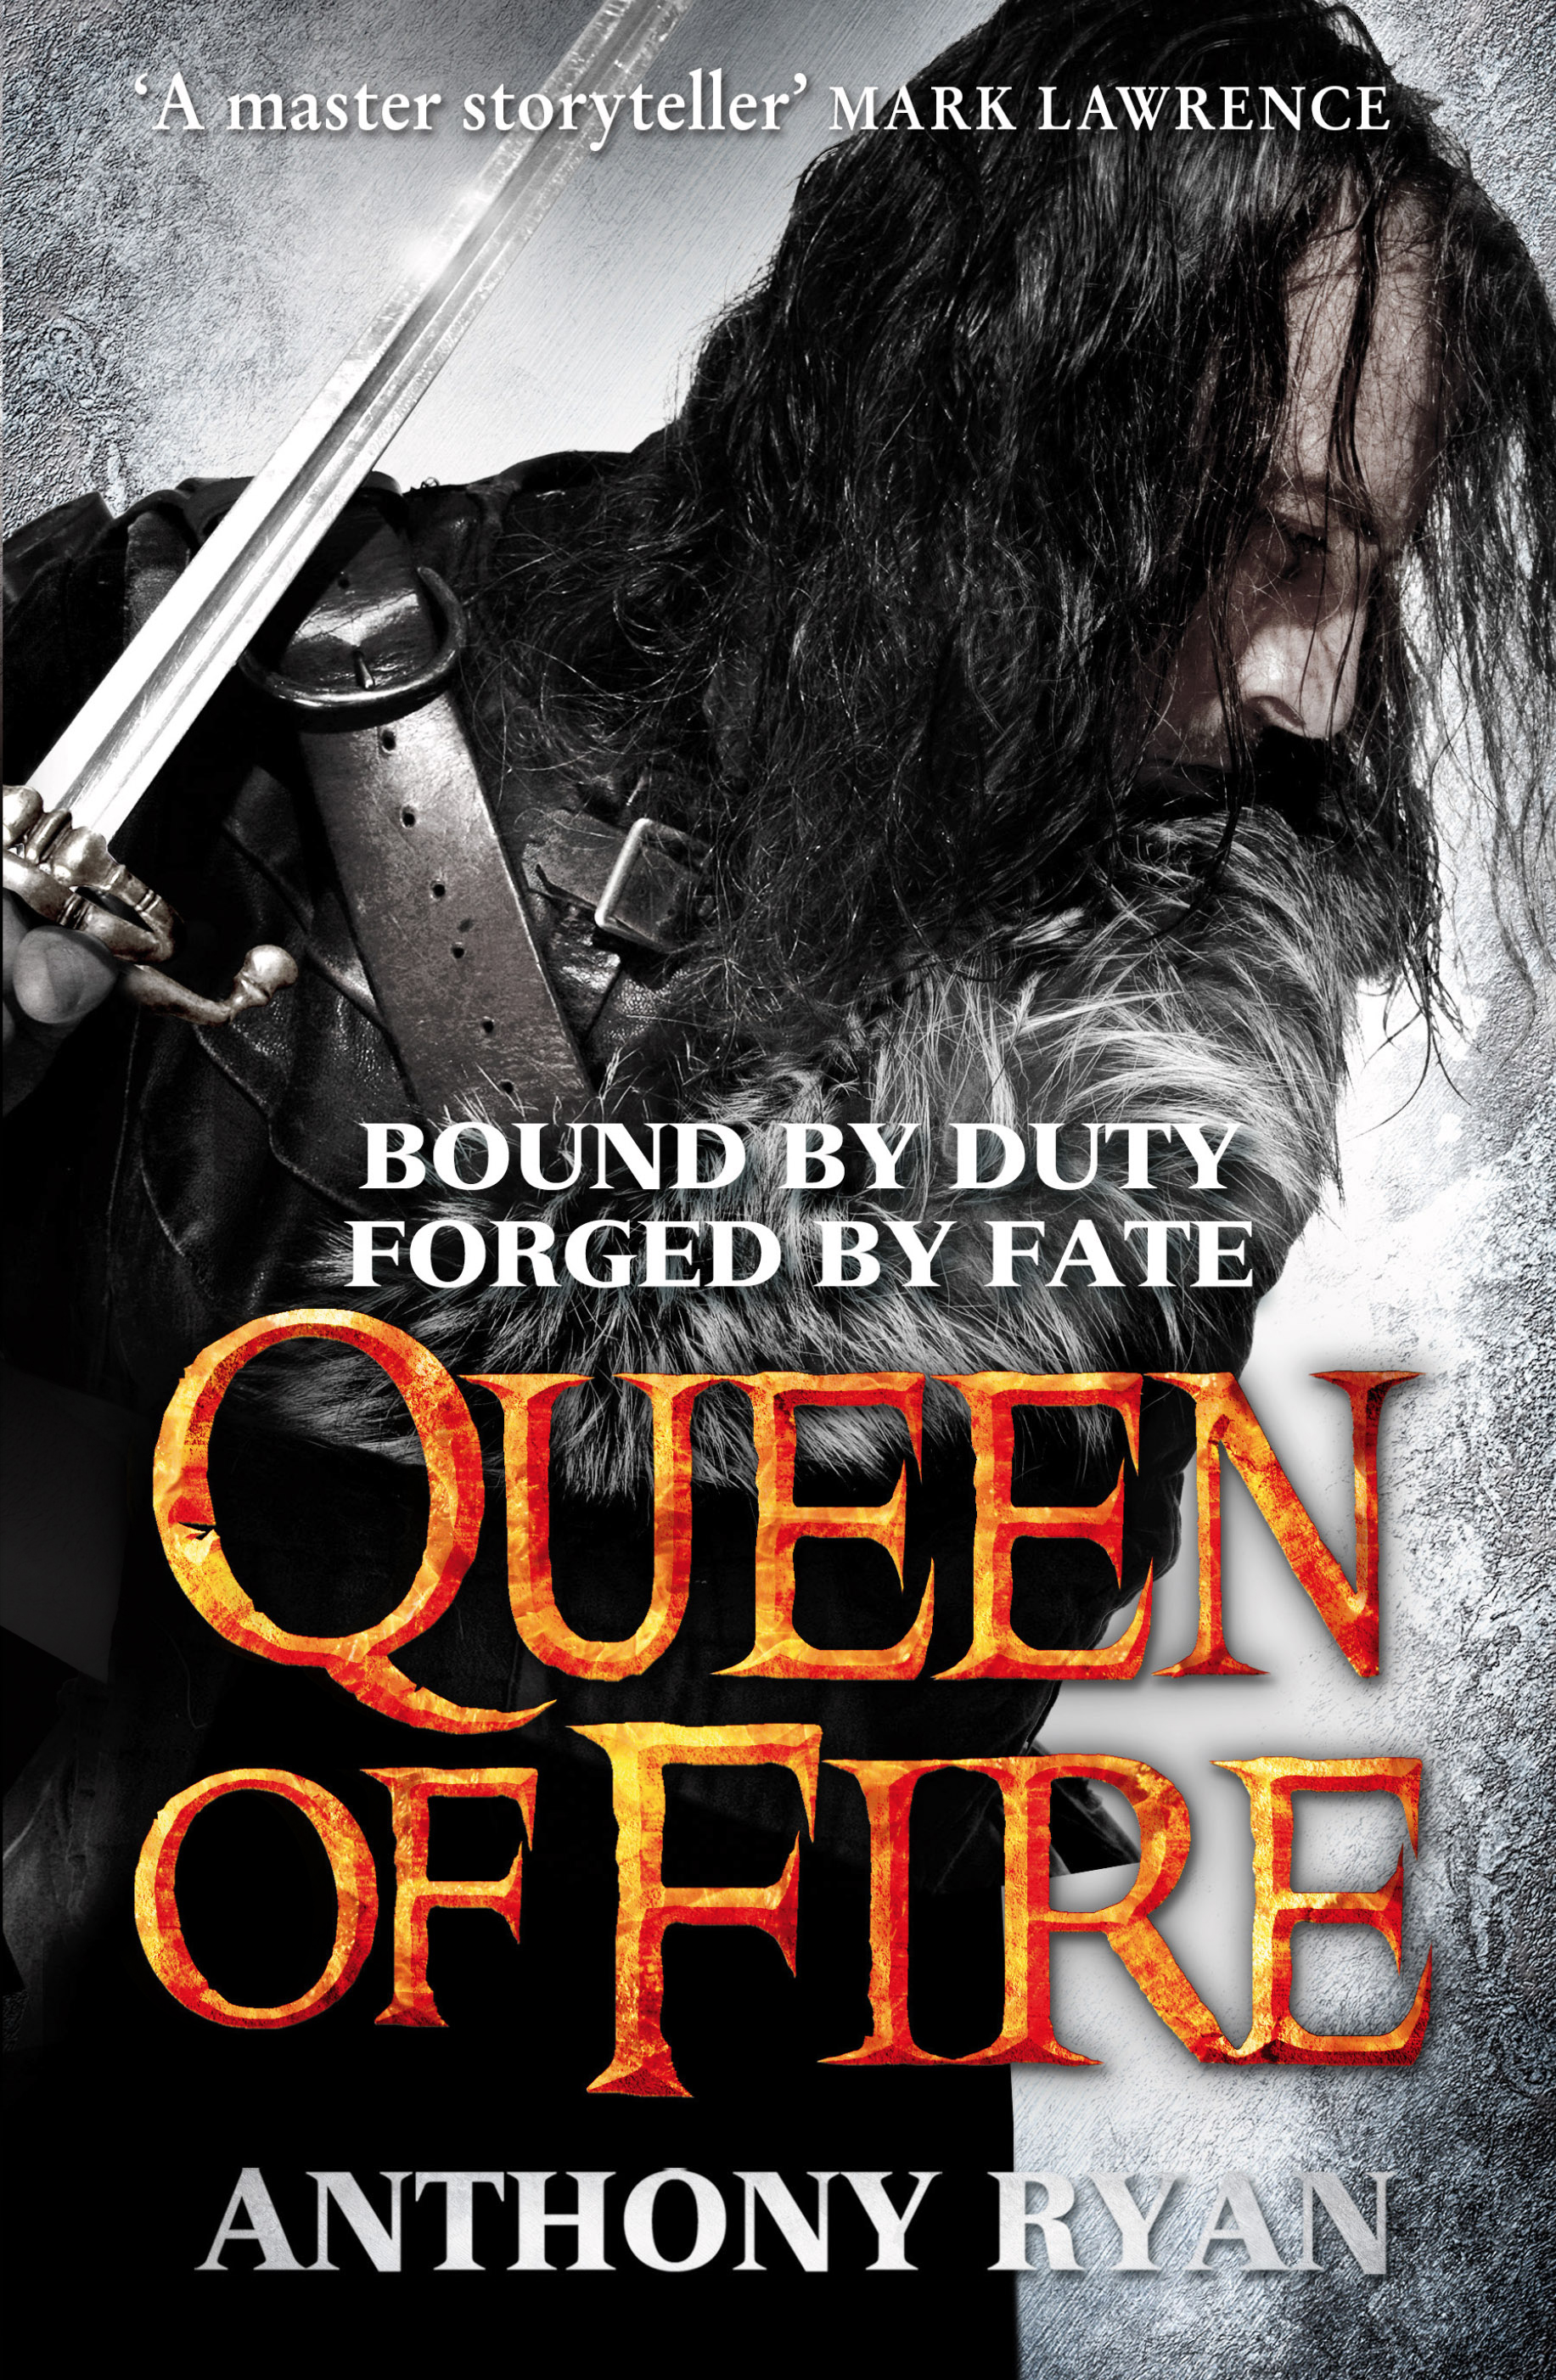 http://www.orbitbooks.net/wp-content/uploads/2015/01/QUEEN-OF-FIRE-HI-RES-4.jpg